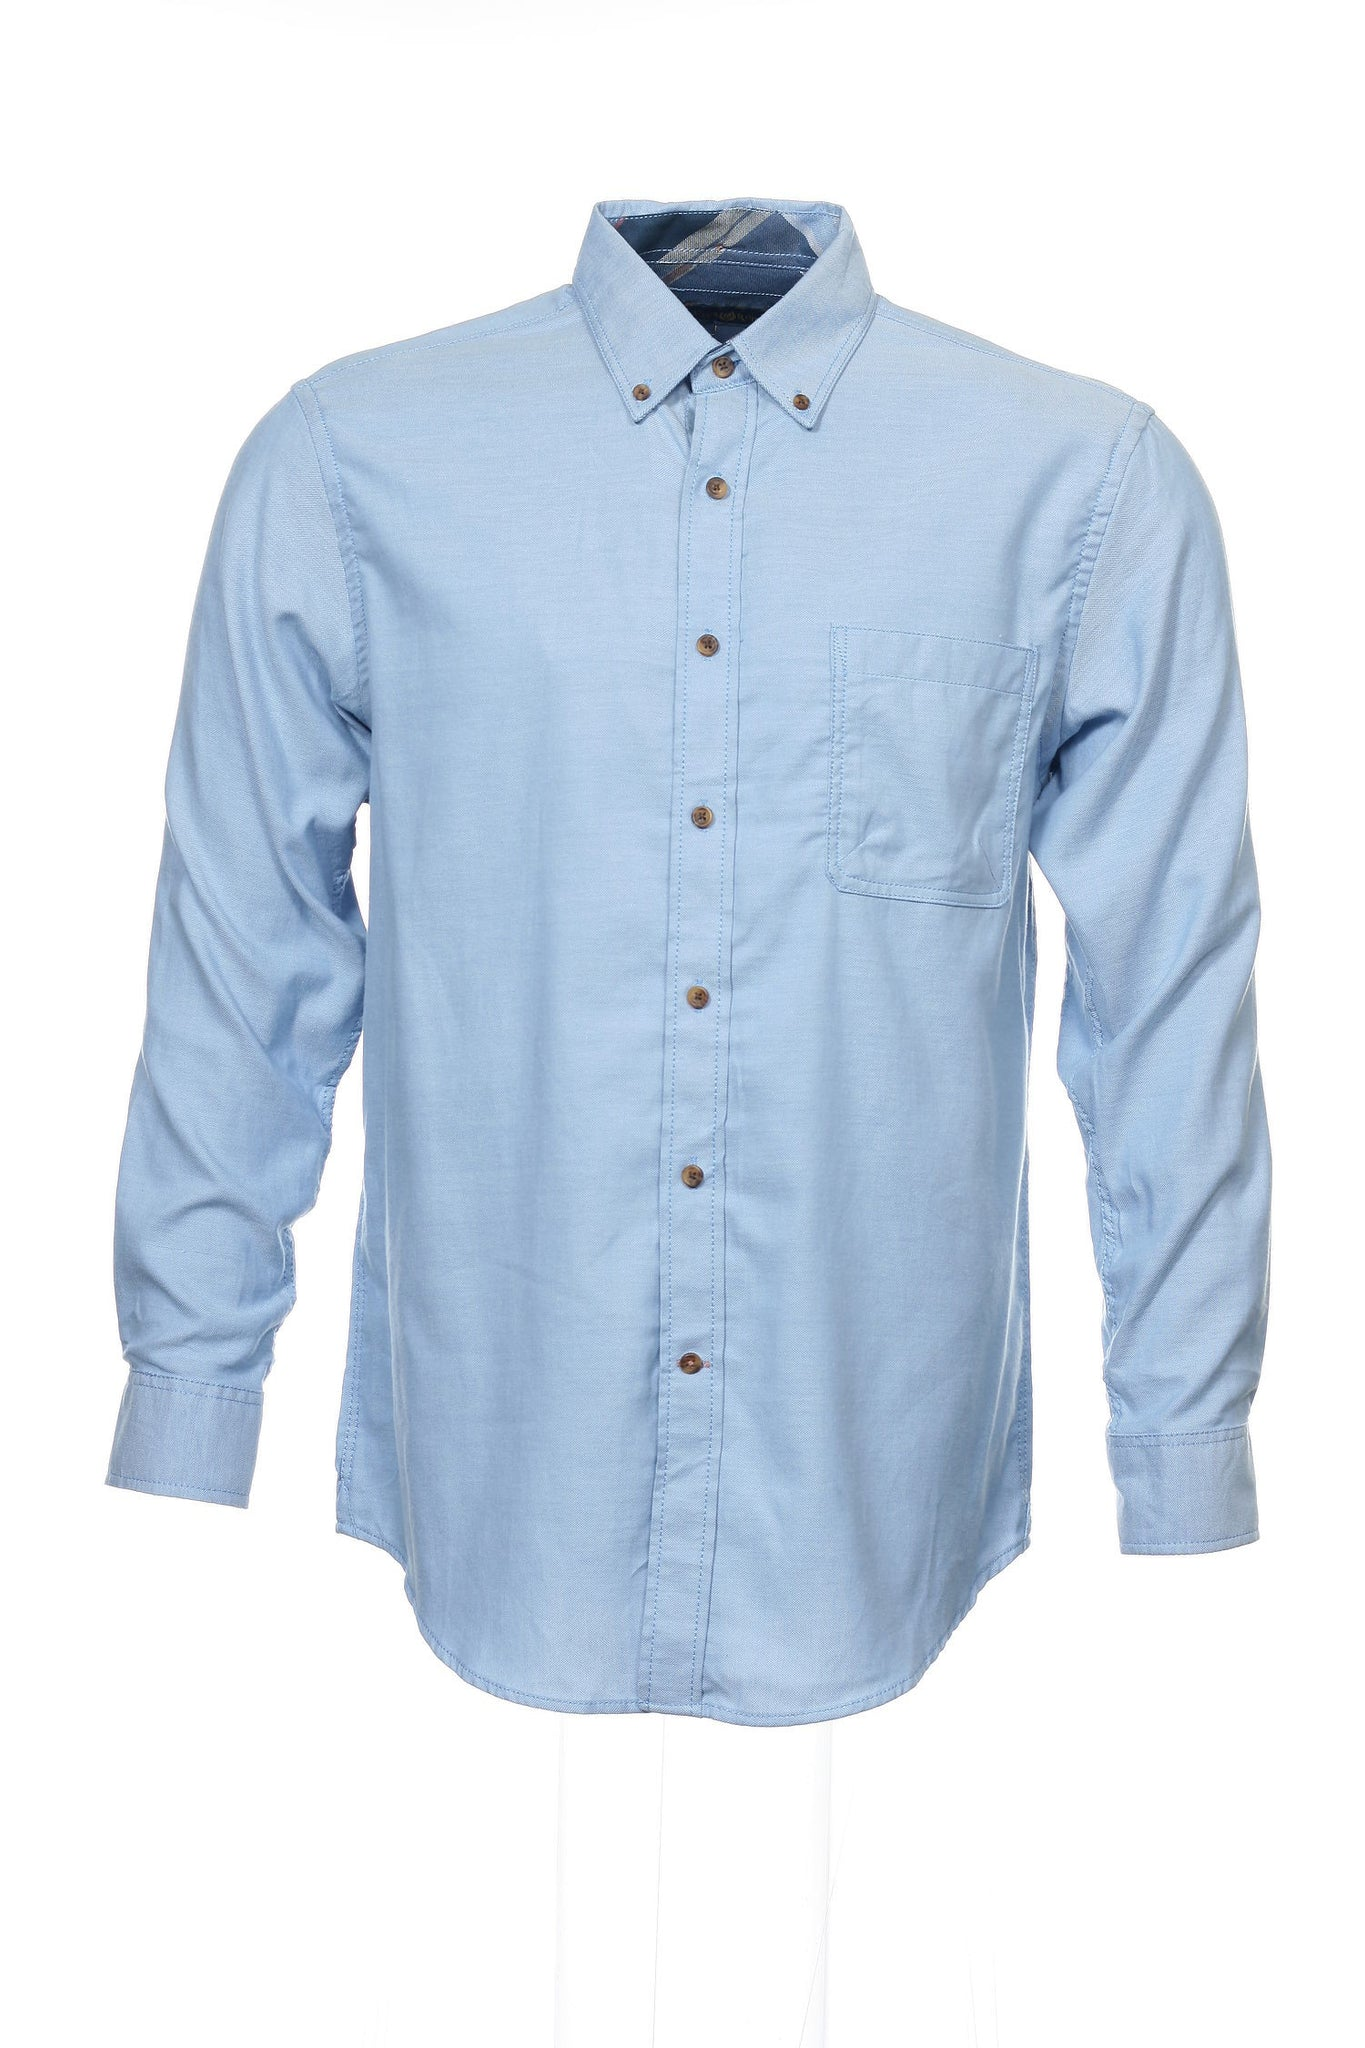 Club Room Mens Light Blue Button Down Shirt